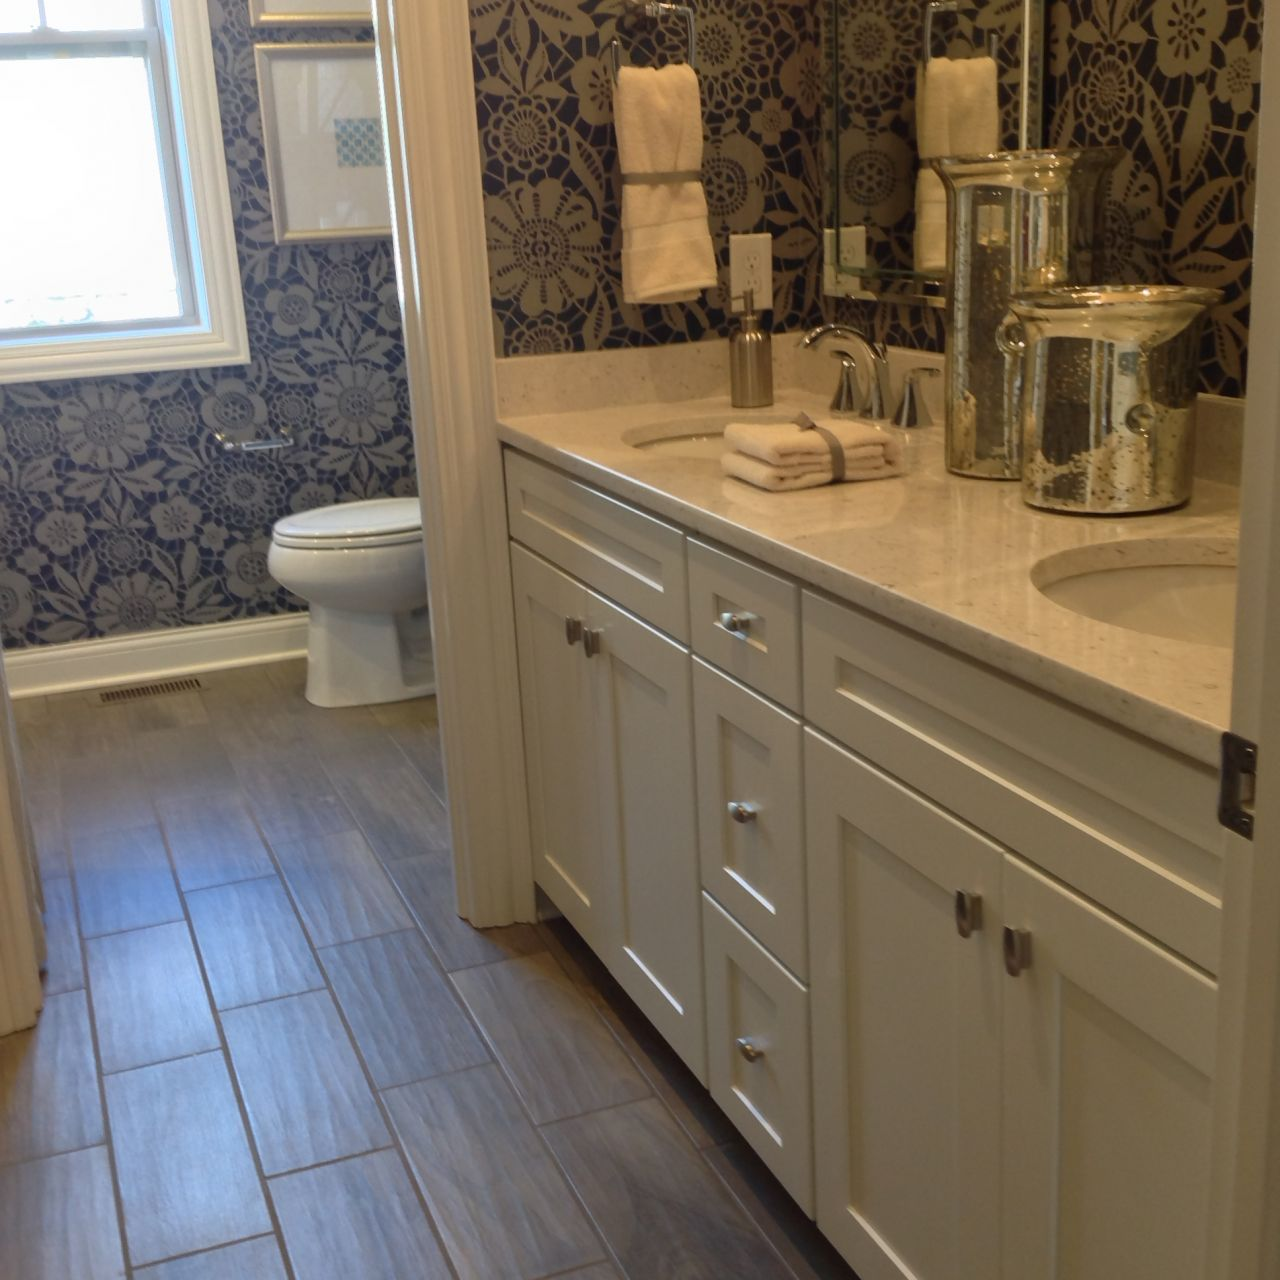 How To Put Ceramic Tile In Bathroom Floor: 5 Bathroom Trends You'll See At 2015 Columbus BIA Parade